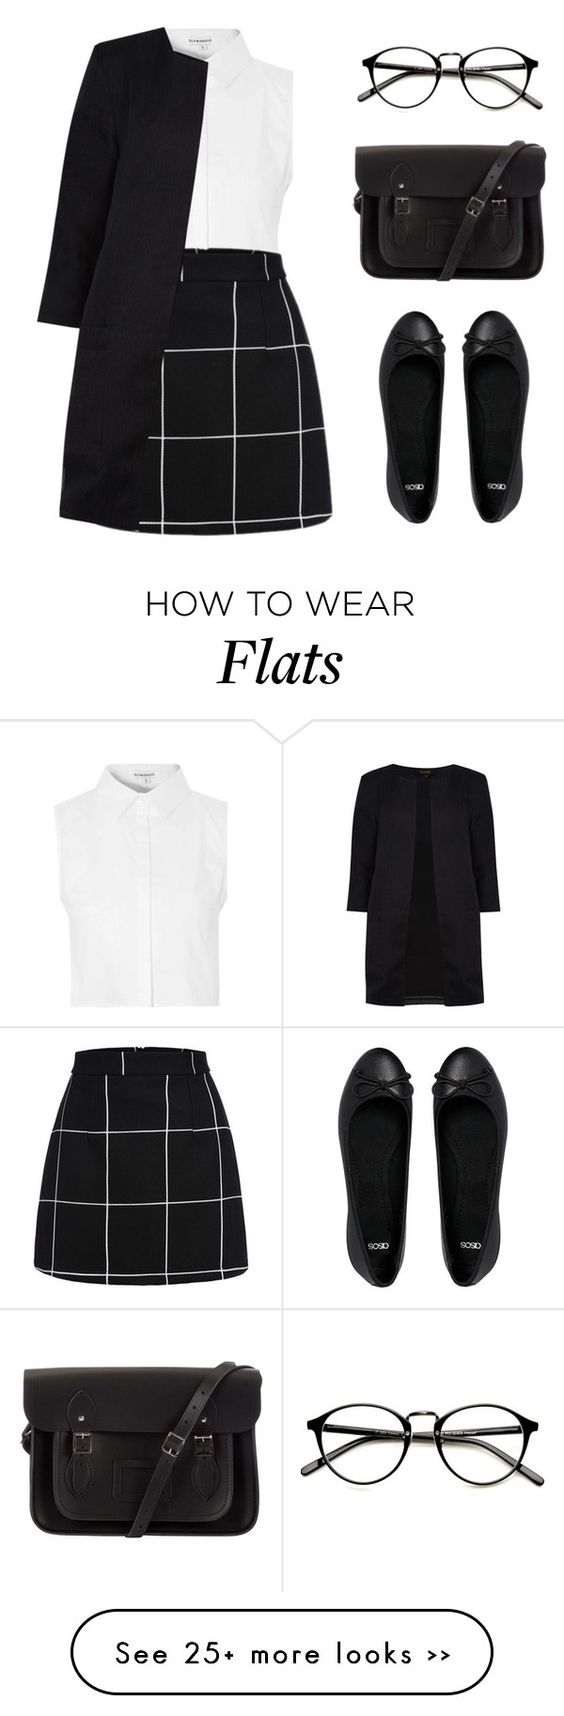 """""""Lily"""" by felytery on Polyvore featuring Glamorous, ASOS, The Cambridge Satchel Company and Dorothy Perkins"""